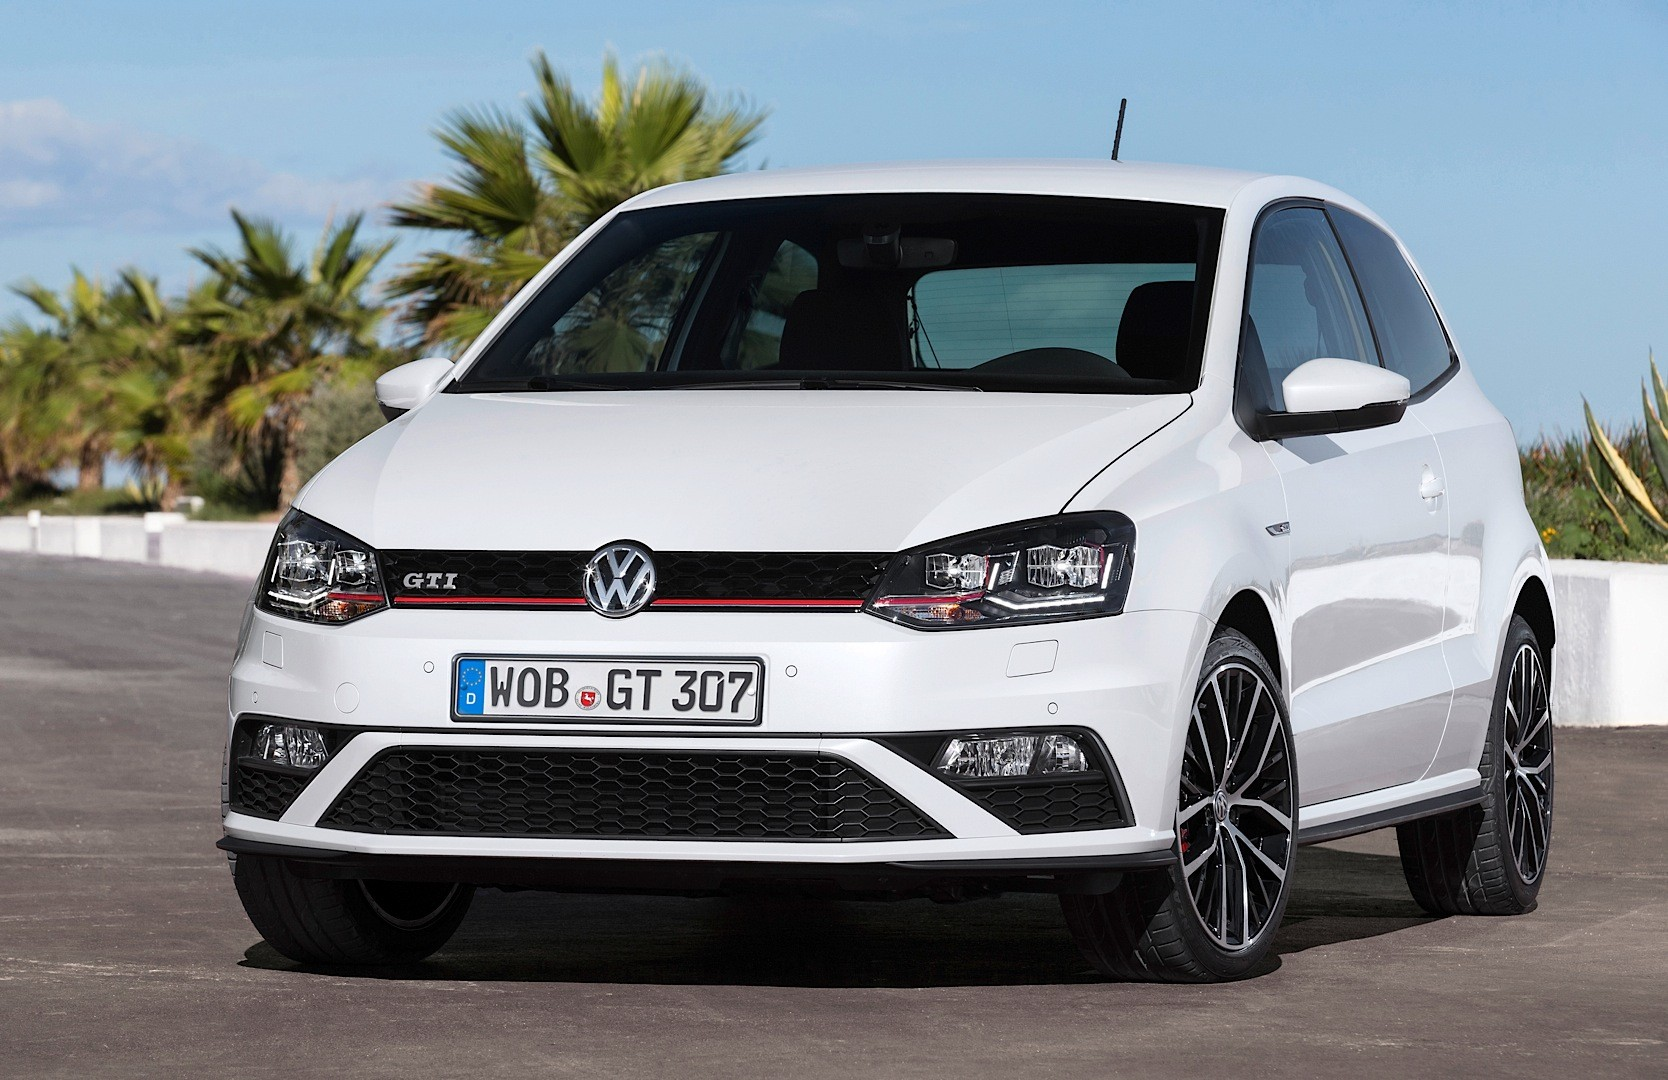 2015 Volkswagen Polo GTI 6R Facelift New Photos and Details